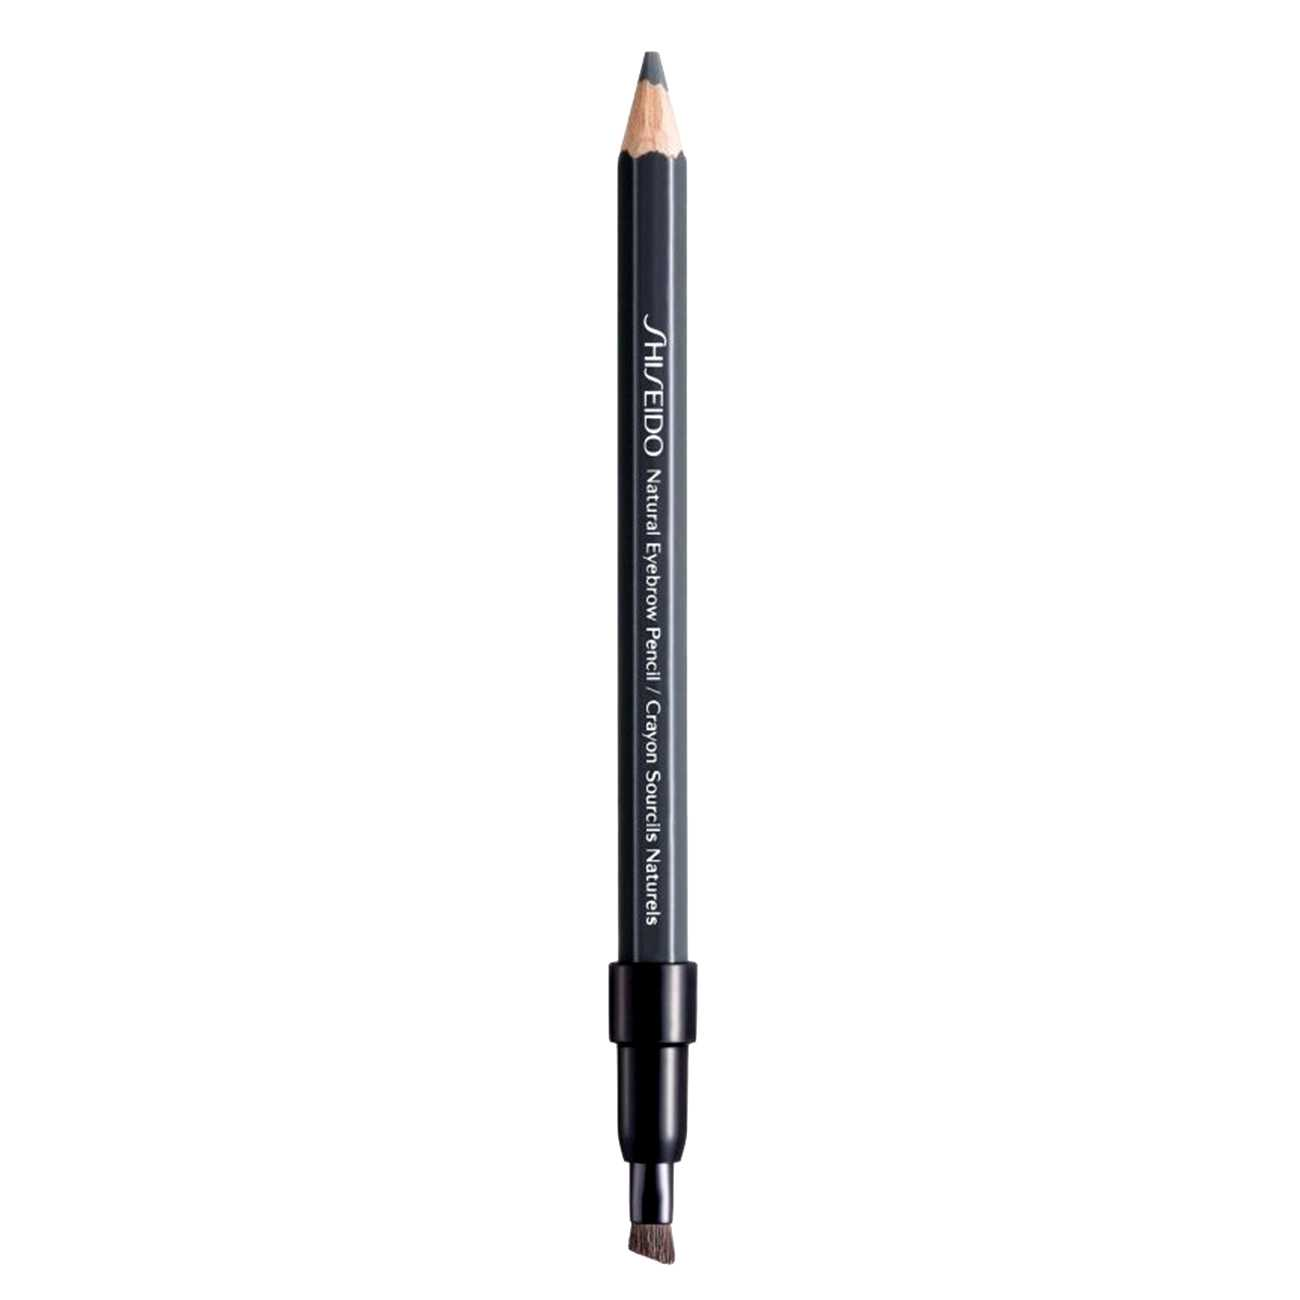 NATURAL EYEBROW PENCIL 4 G Natural Black Gy901 imagine produs